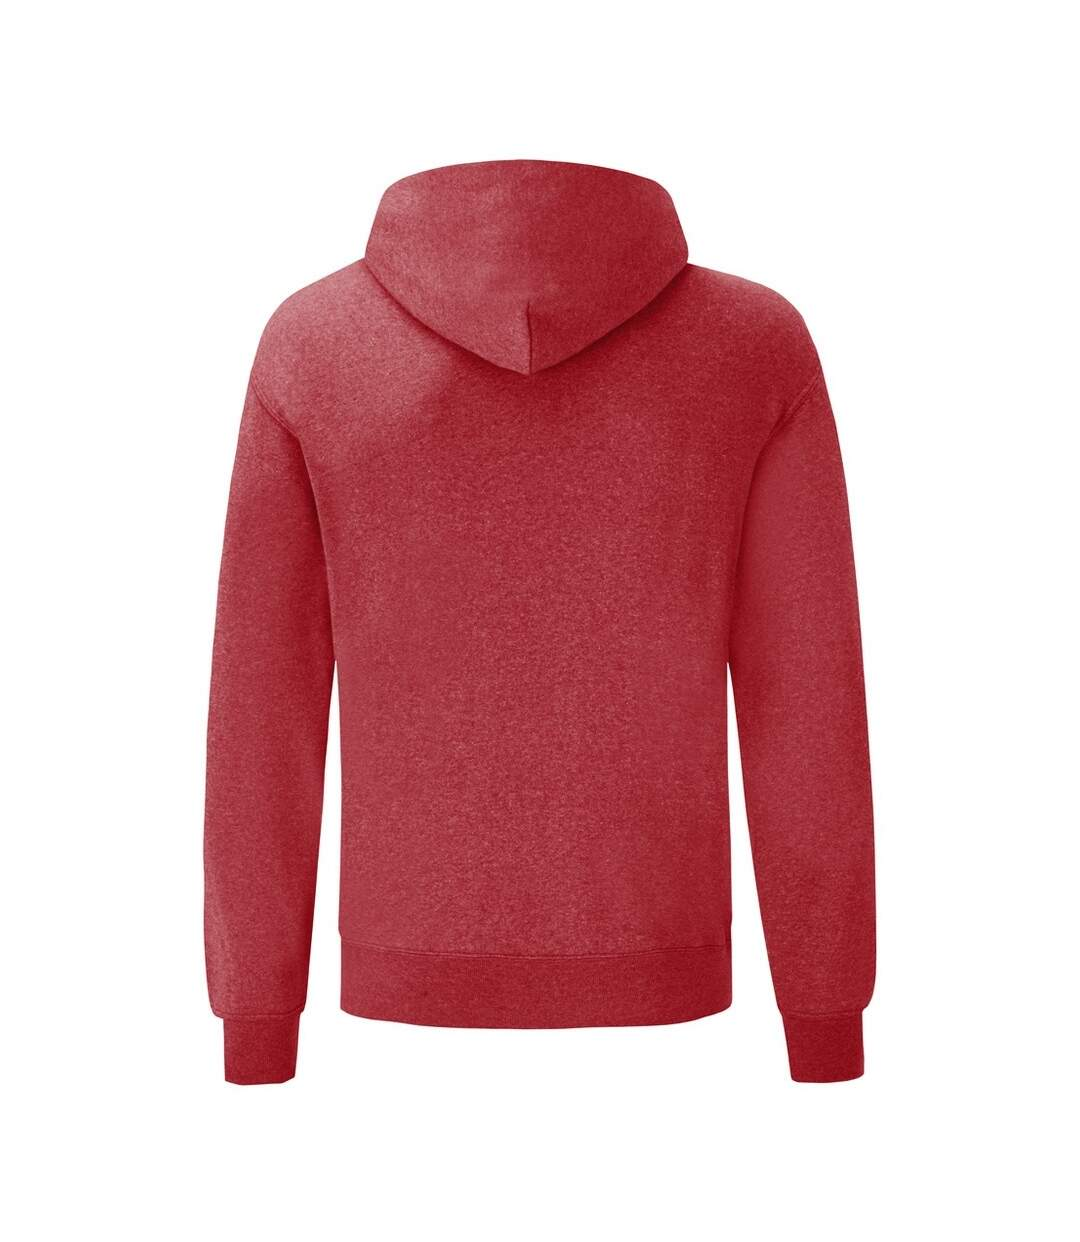 Fruit Of The Loom - Sweat À Capuche - Homme (Rouge chiné) - UTBC366